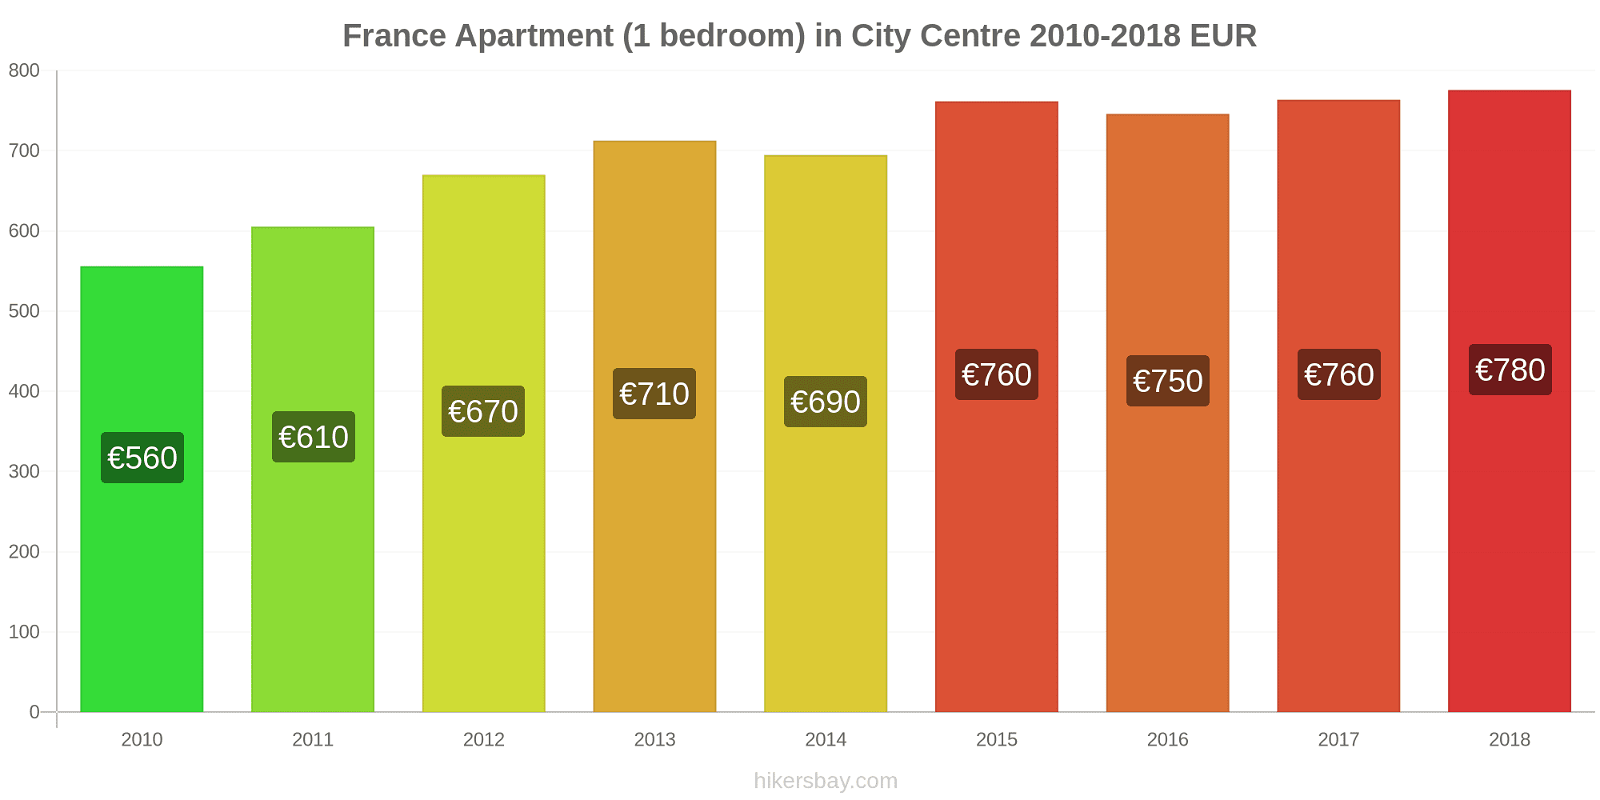 France price changes Apartment (1 bedroom) in City Centre hikersbay.com